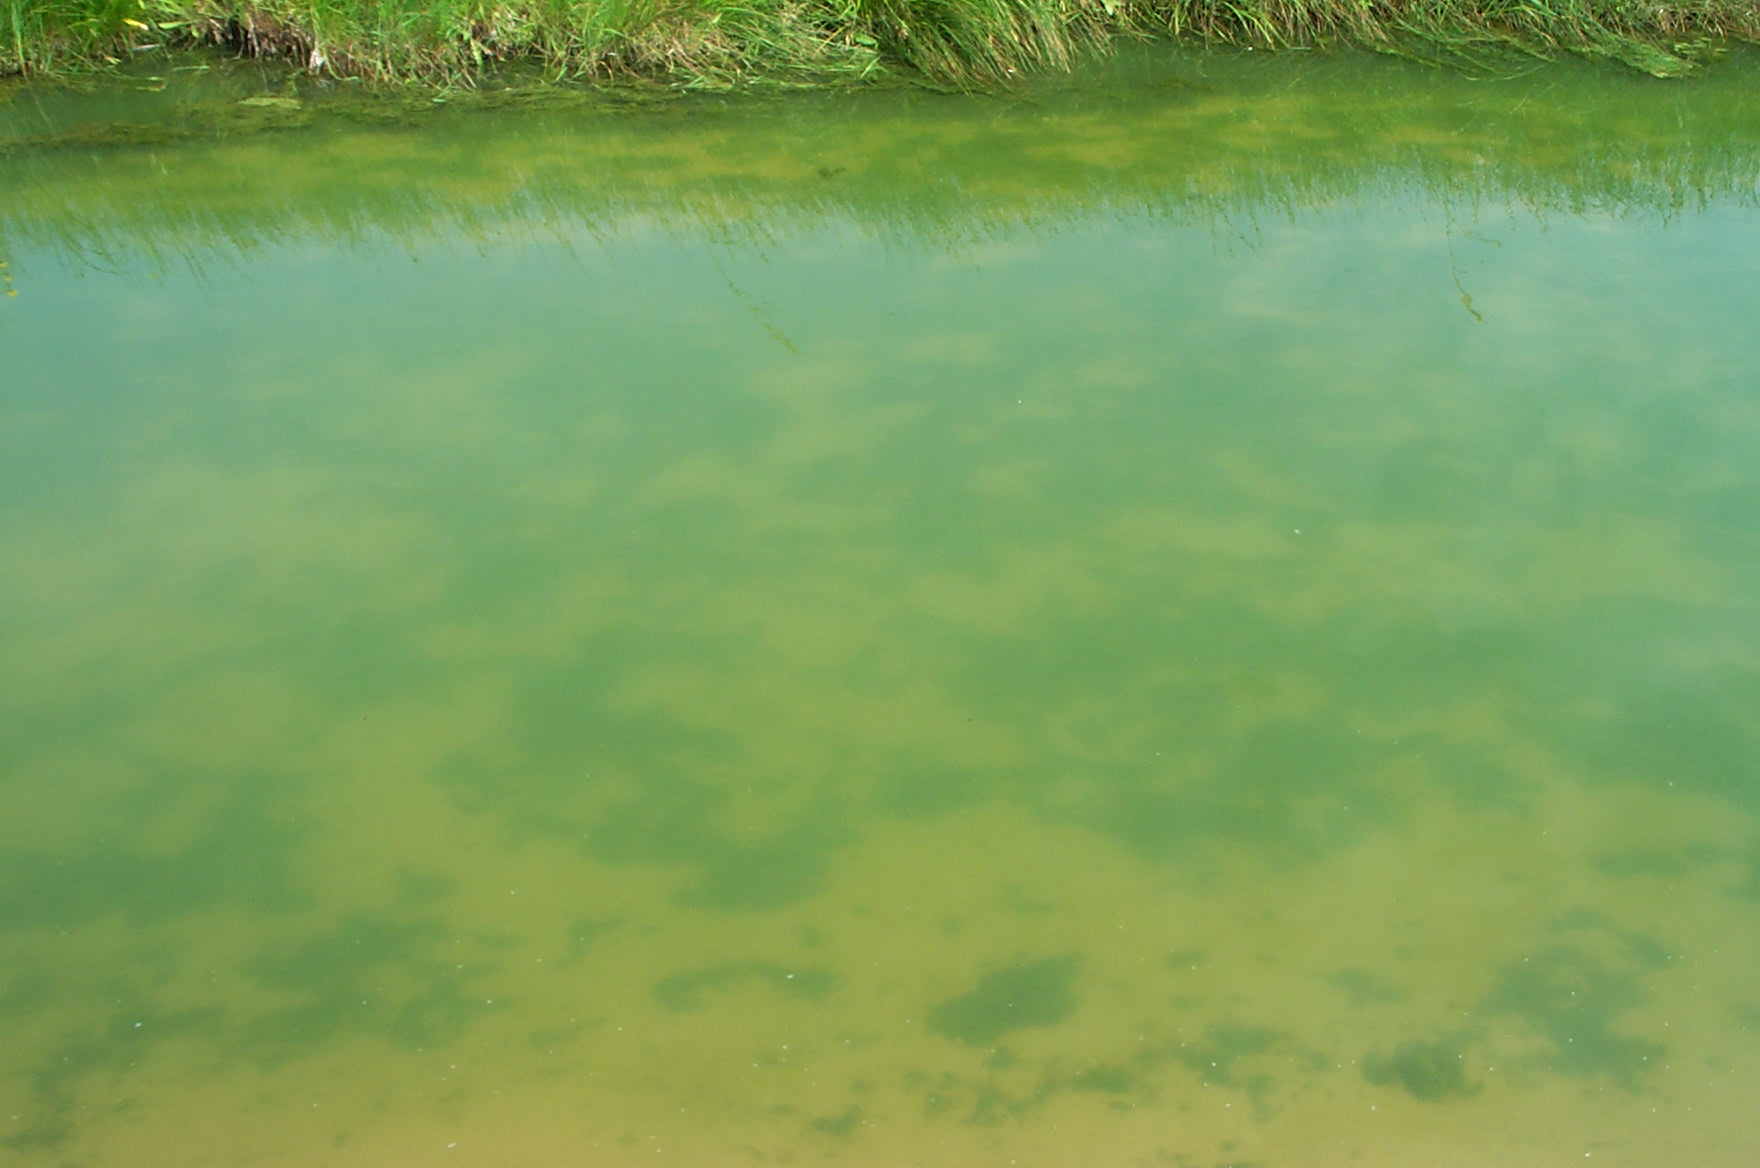 Green filamentous algae on the bottom of a pond